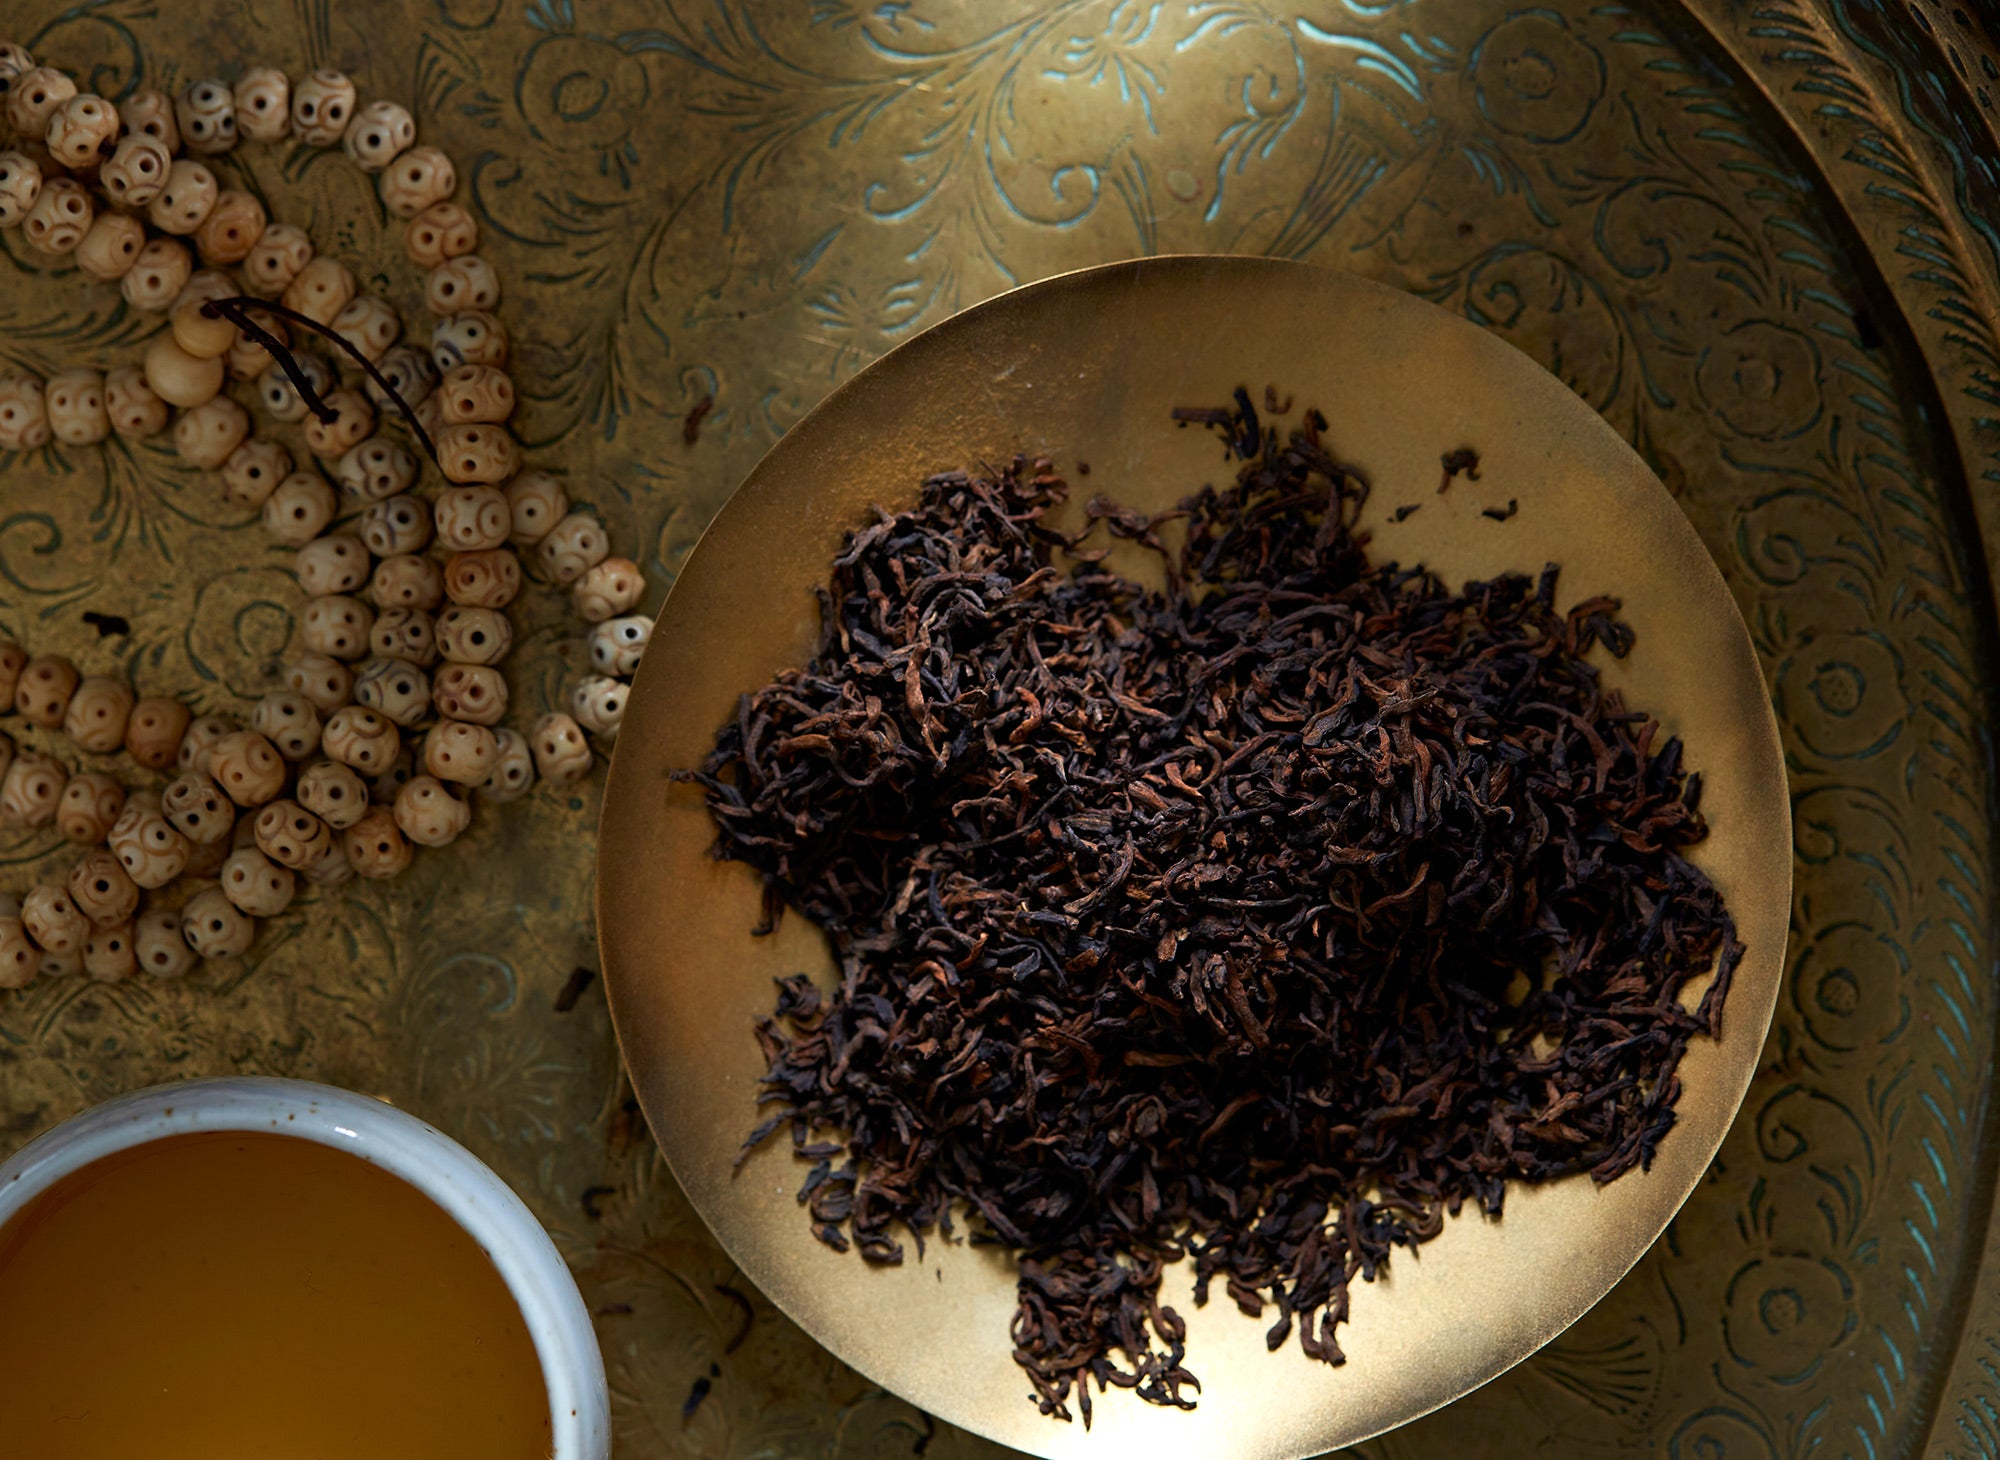 Shop organic Puerh tea at Bellocq, online or at our NYC atelier. Elevate the everyday with our fine loose leaf Pu erh teas.